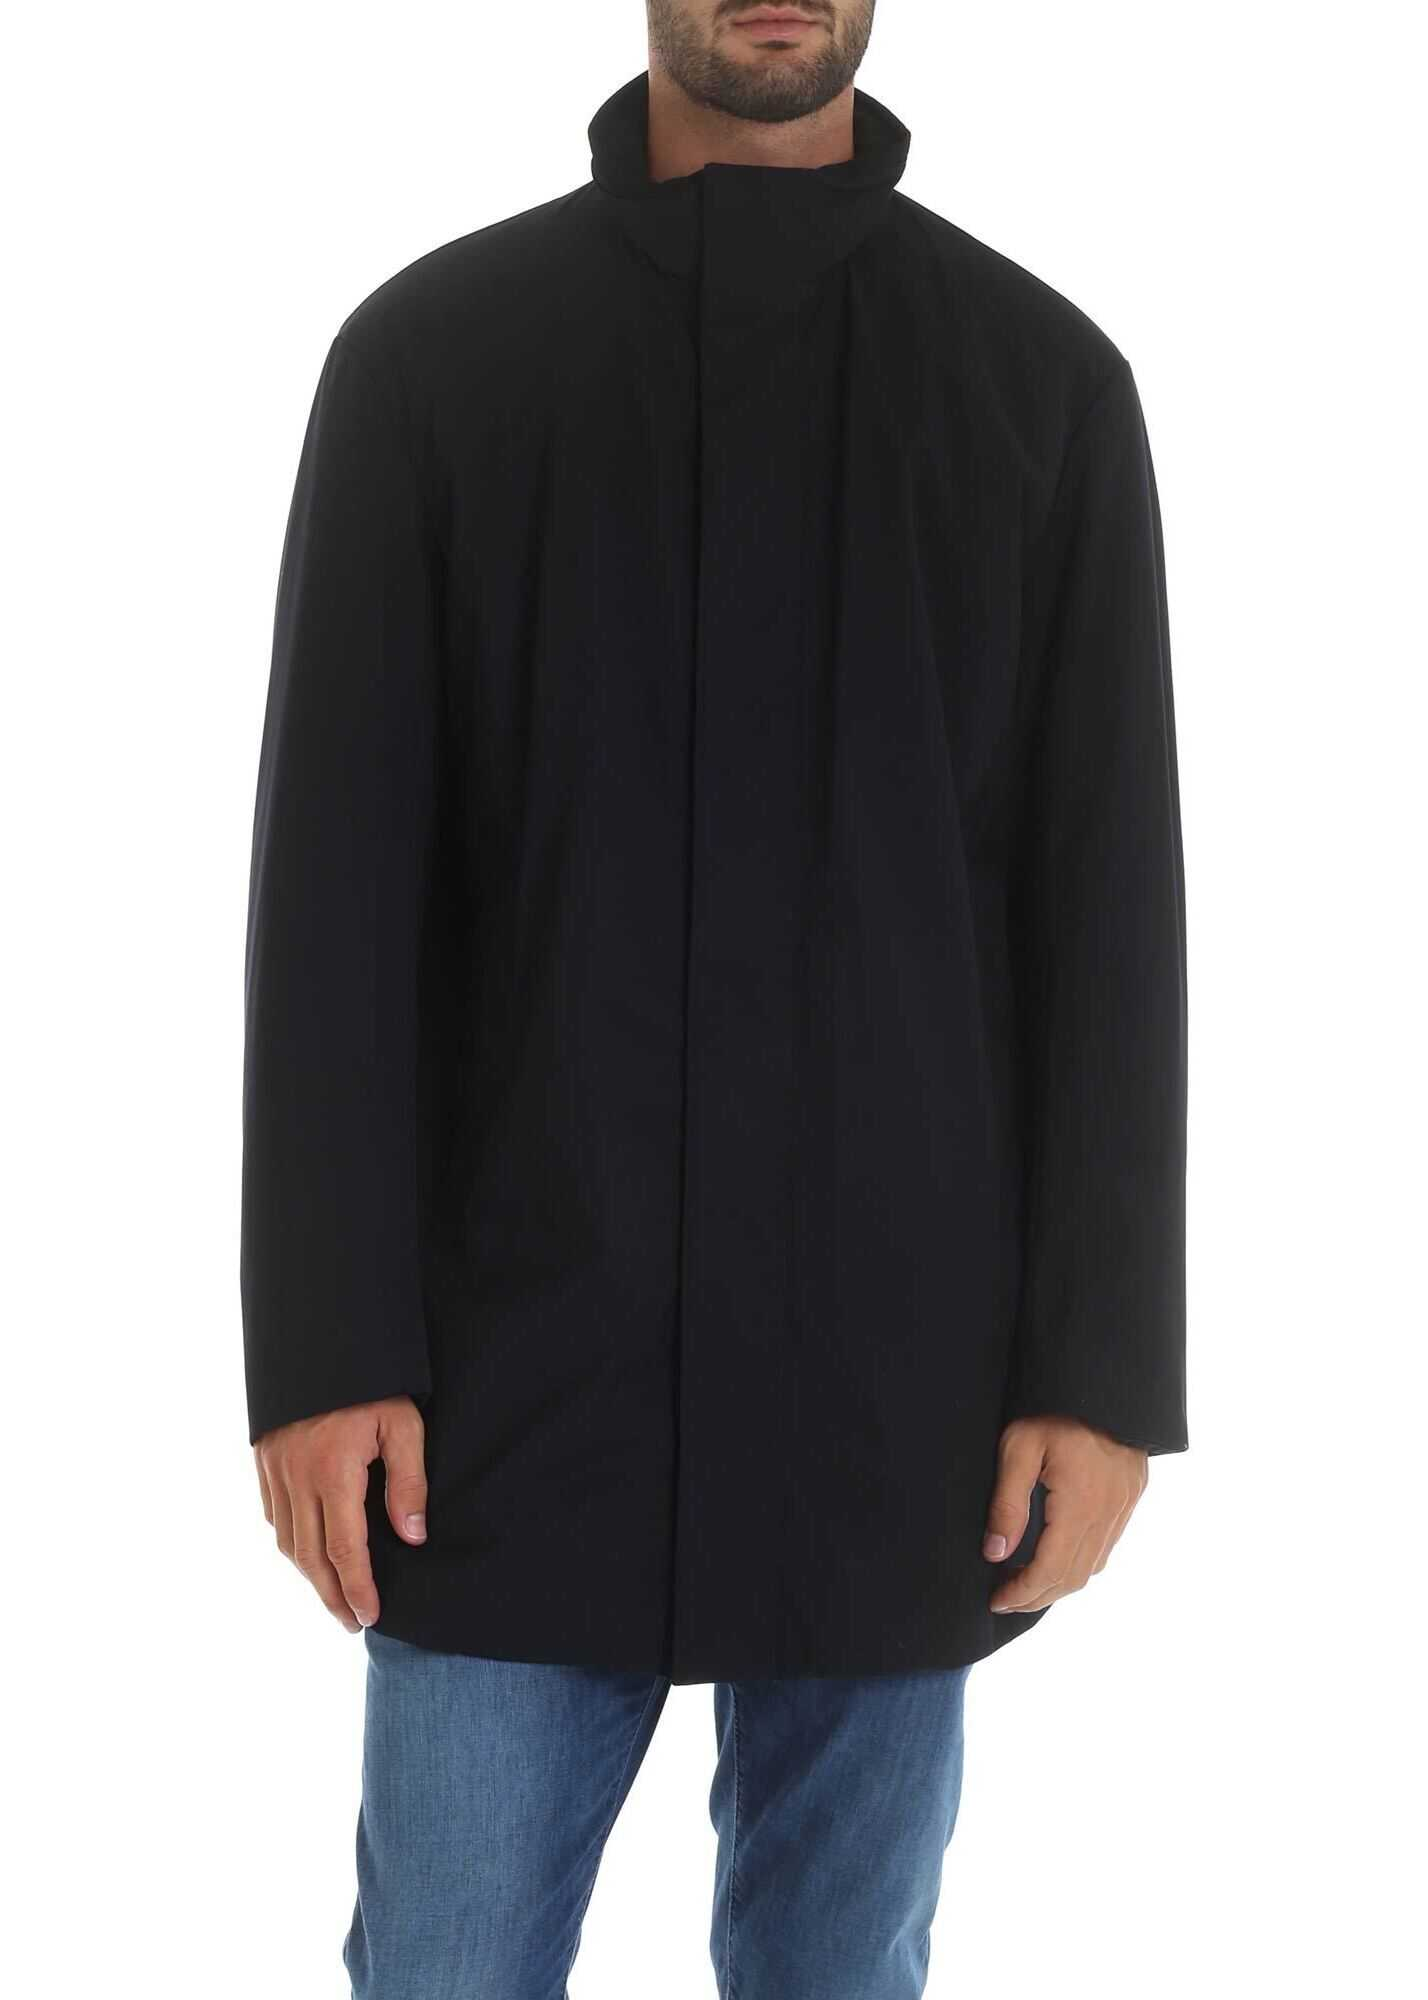 Emporio Armani Dark Blue Coat With Drawstring At The Waist Blue